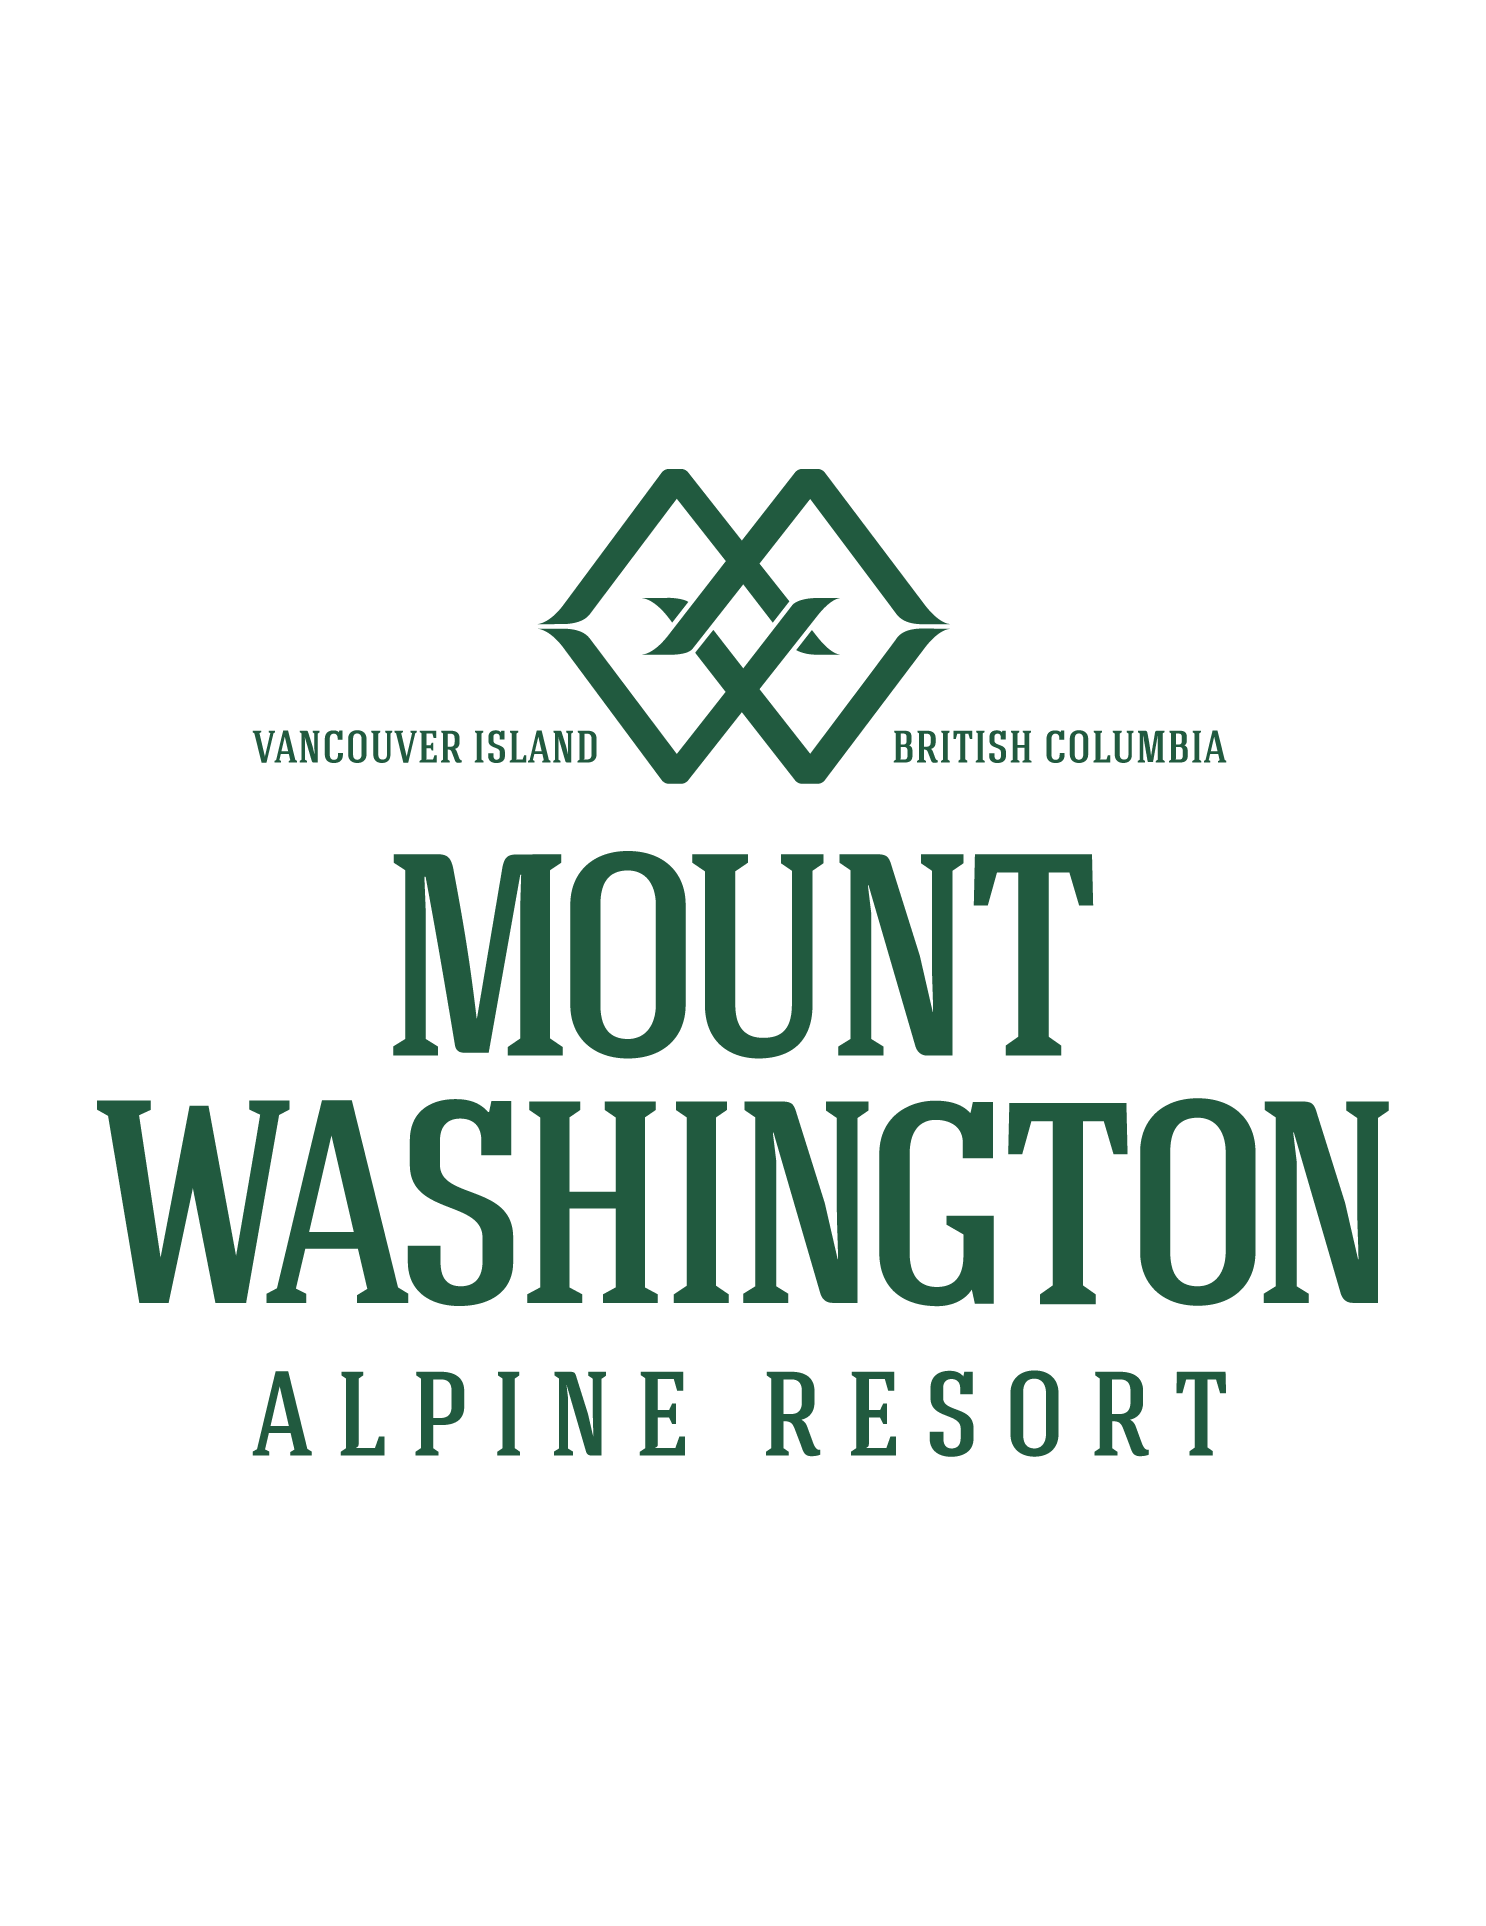 Mount Washington logo